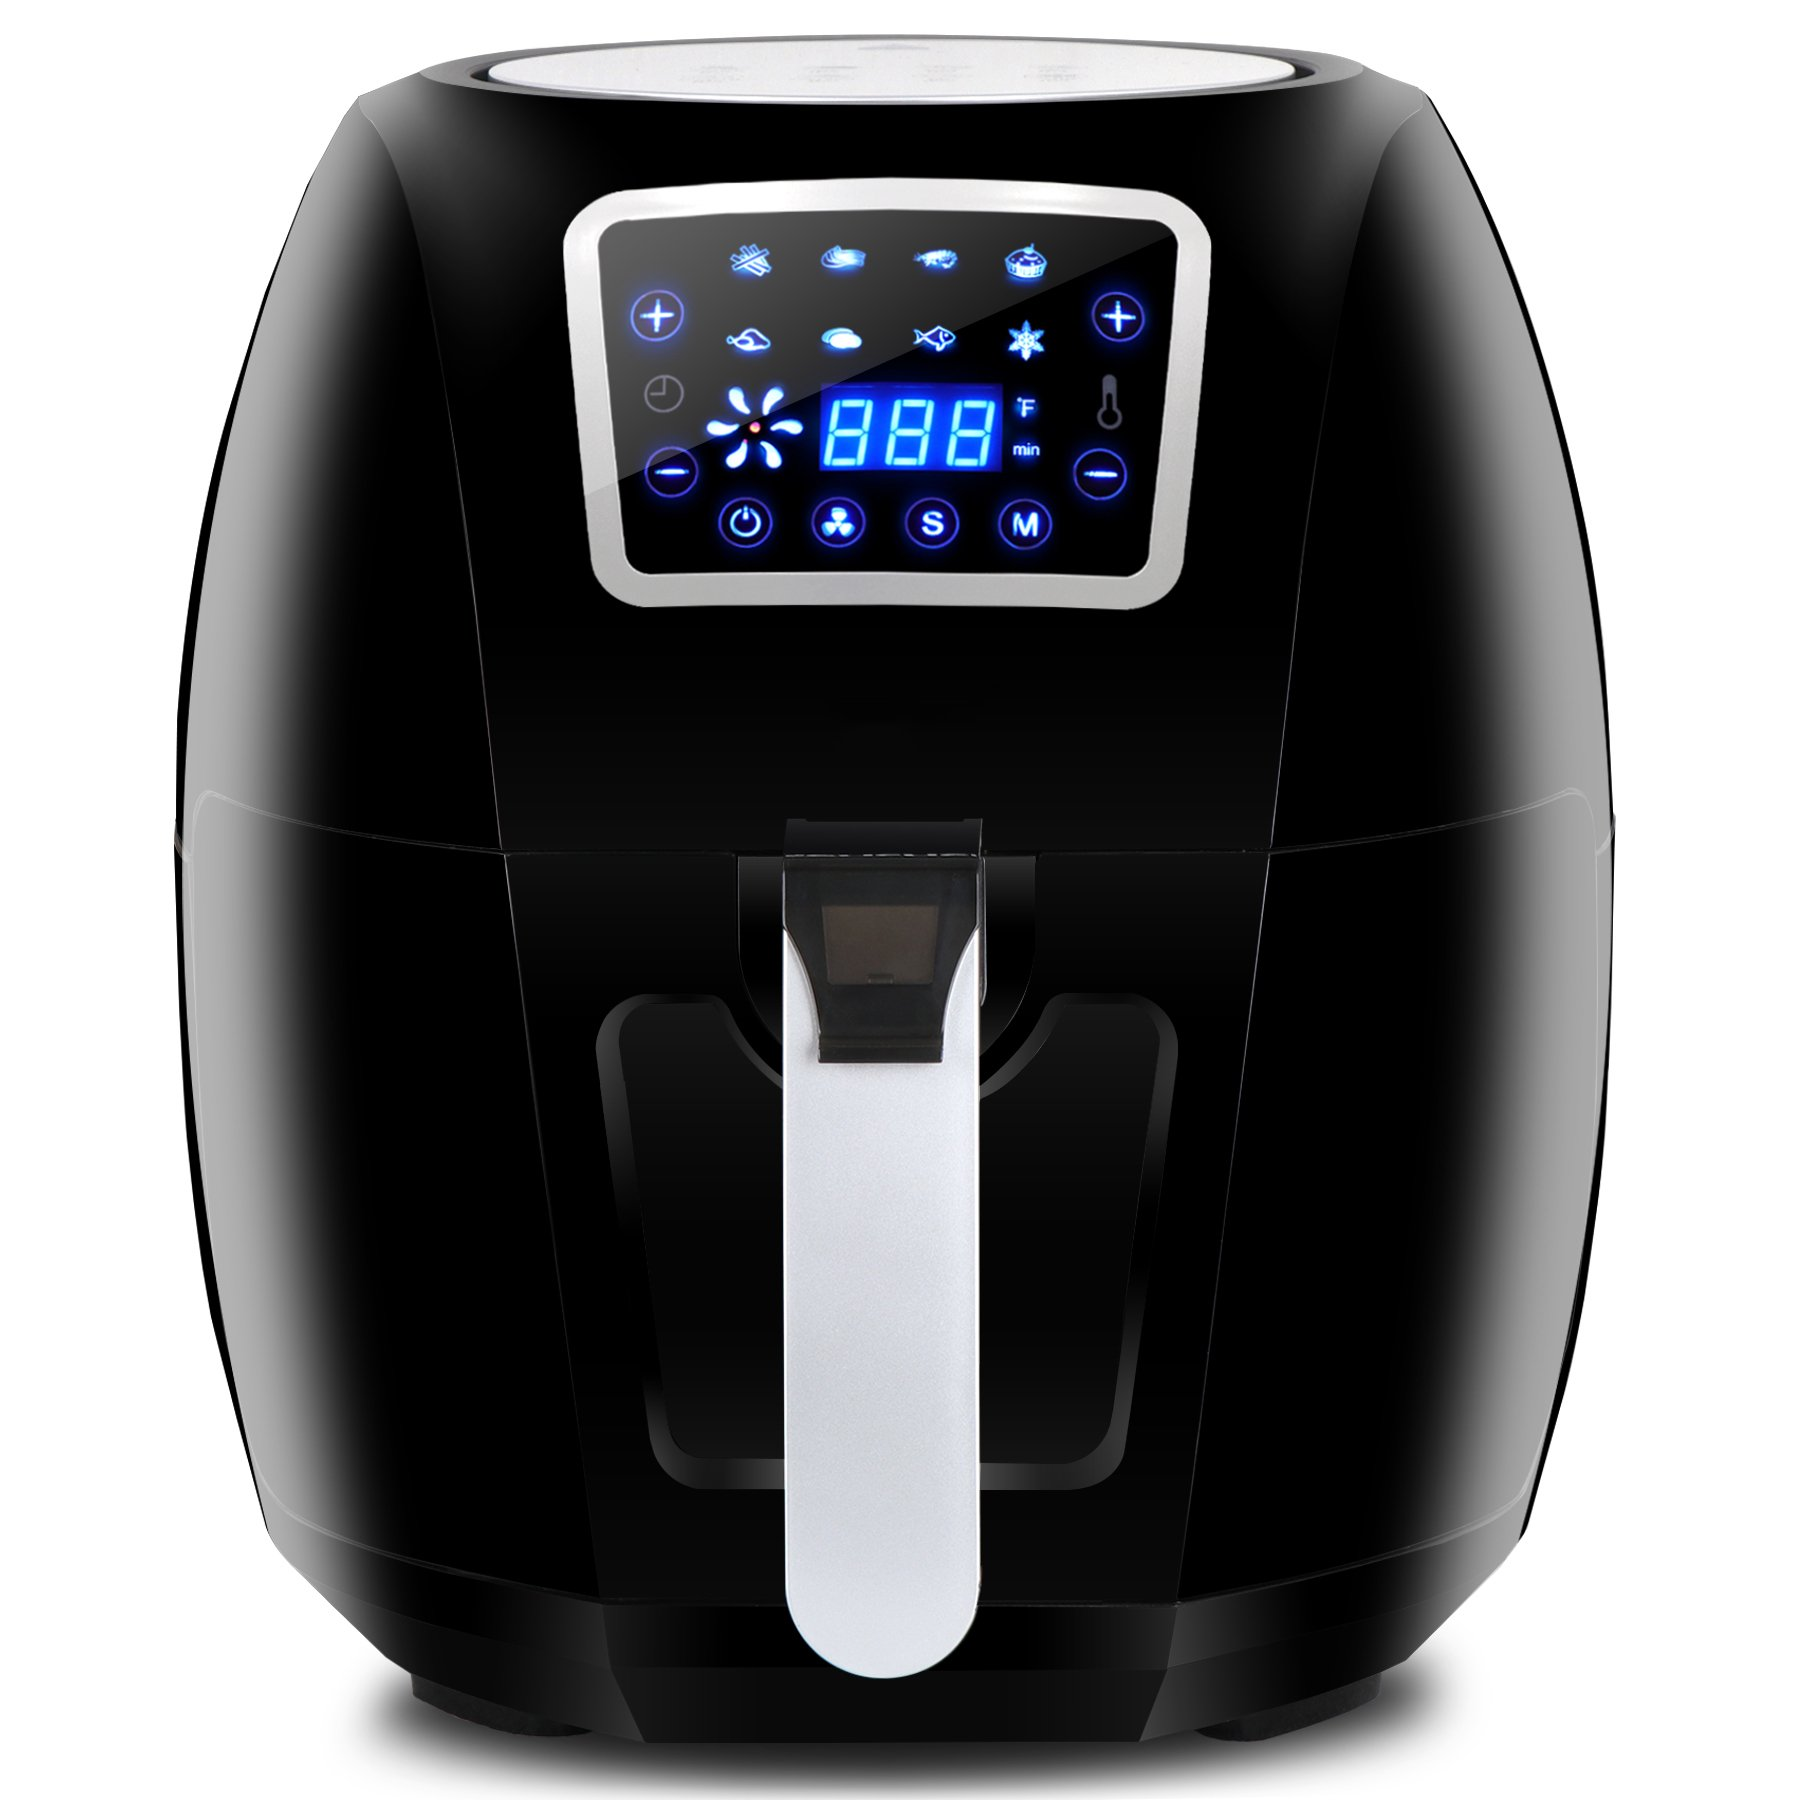 ZENY Electric Air Fryer 1800W 5.8QT Cooking Tool For Healthy Oil Free Cooking w/Time & Temperature Control Dishwasher Safe Parts (#06)